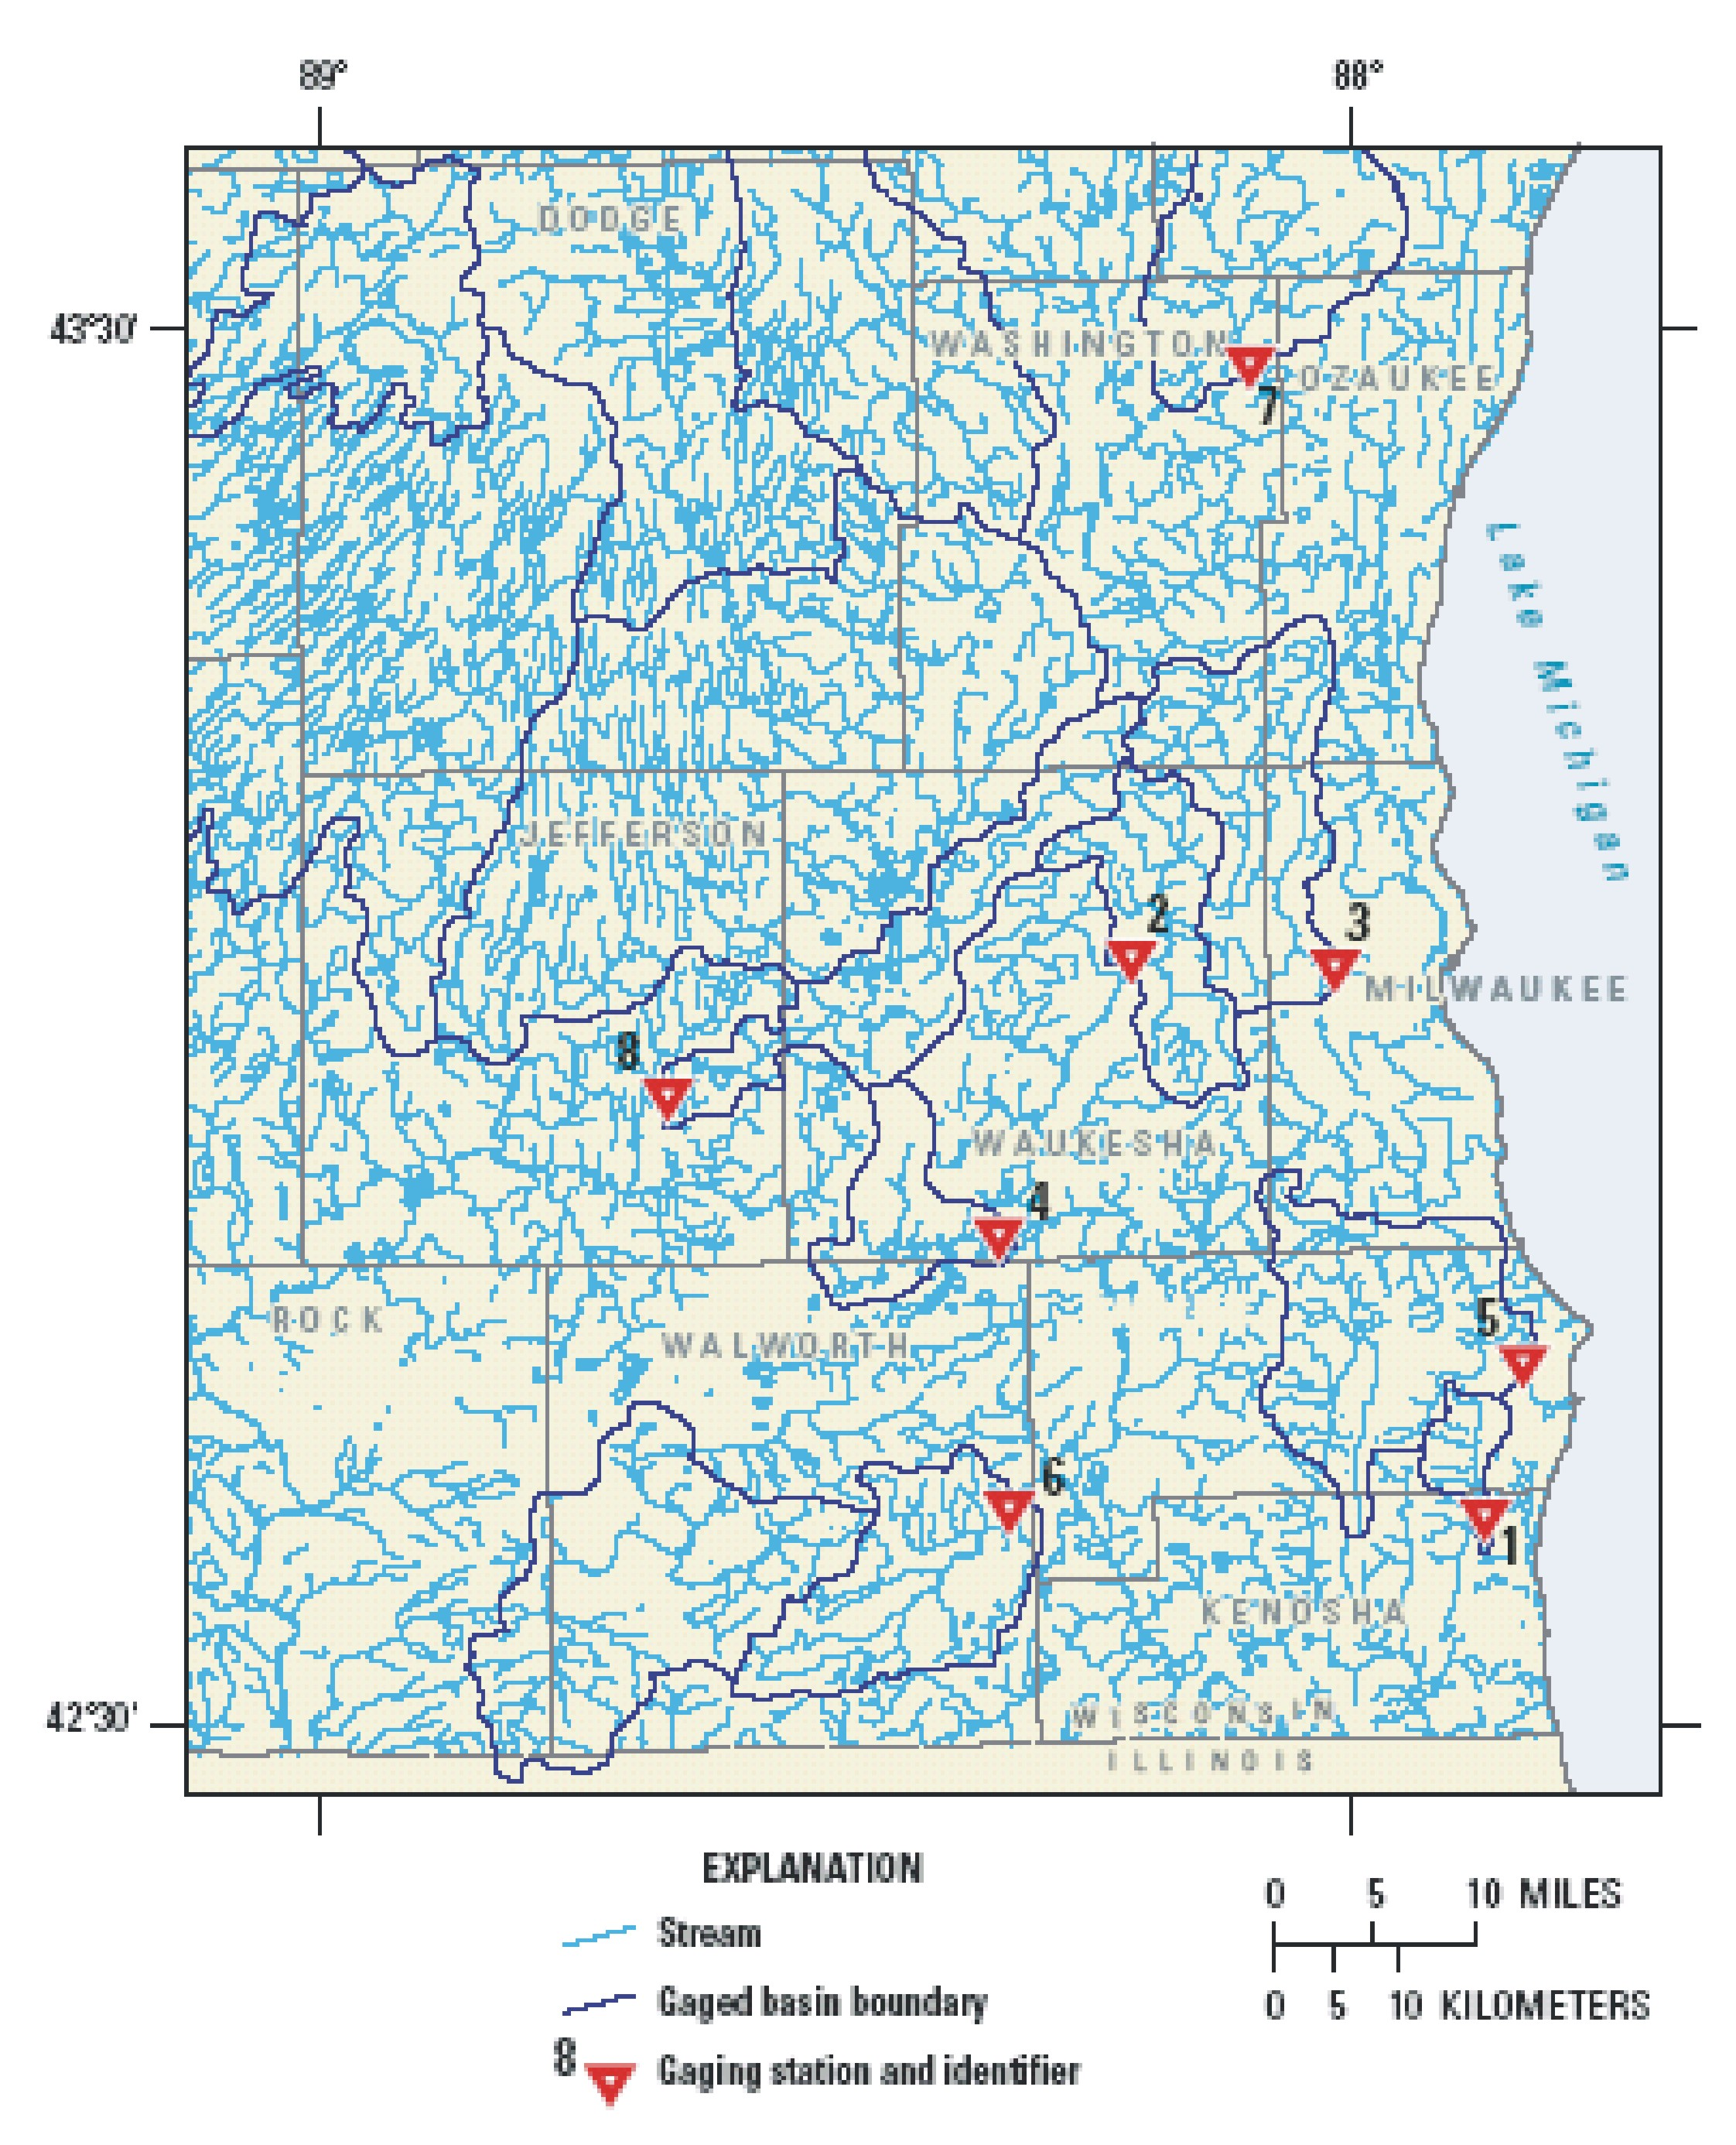 Usgs Ground Water In The Great Lakes Basin The Case Of - Us-bodies-of-water-map